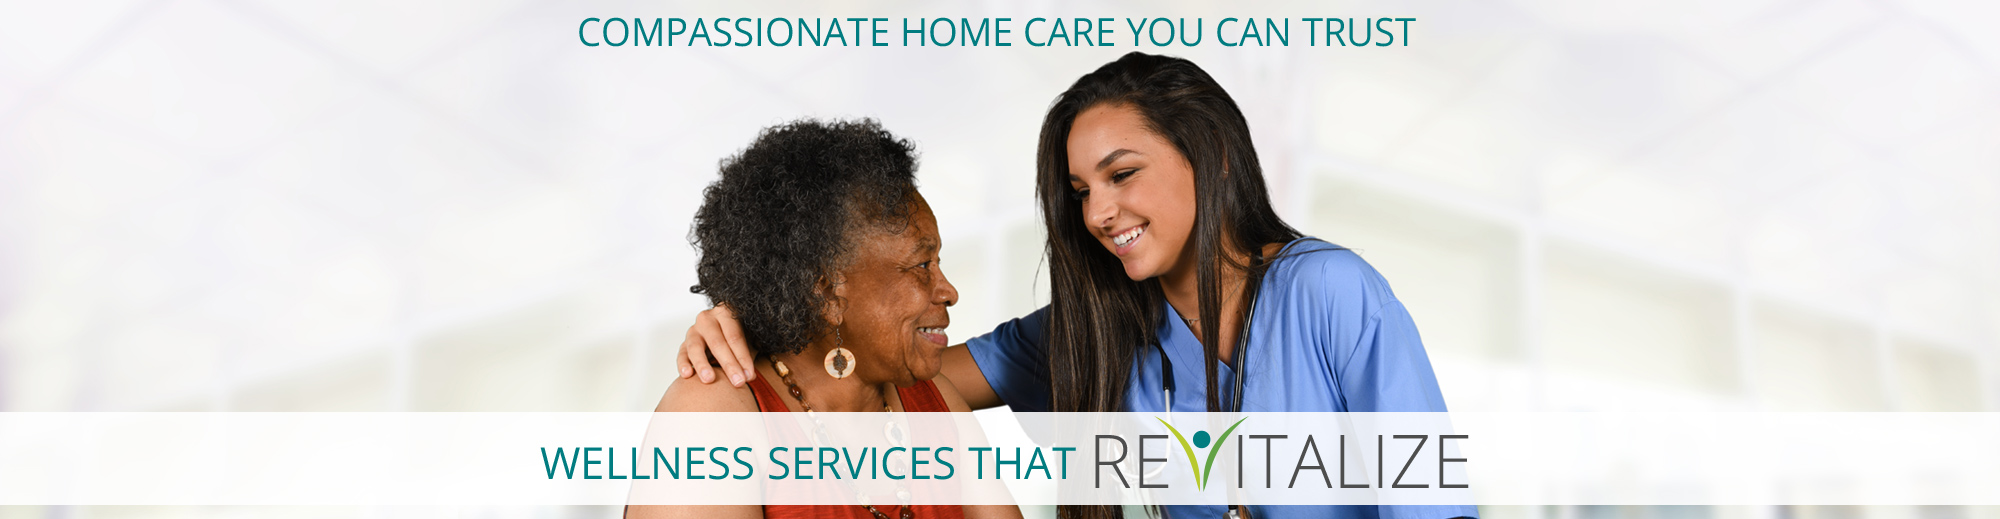 Compassionate Home Care you can trust, wellness services that ReVitalize